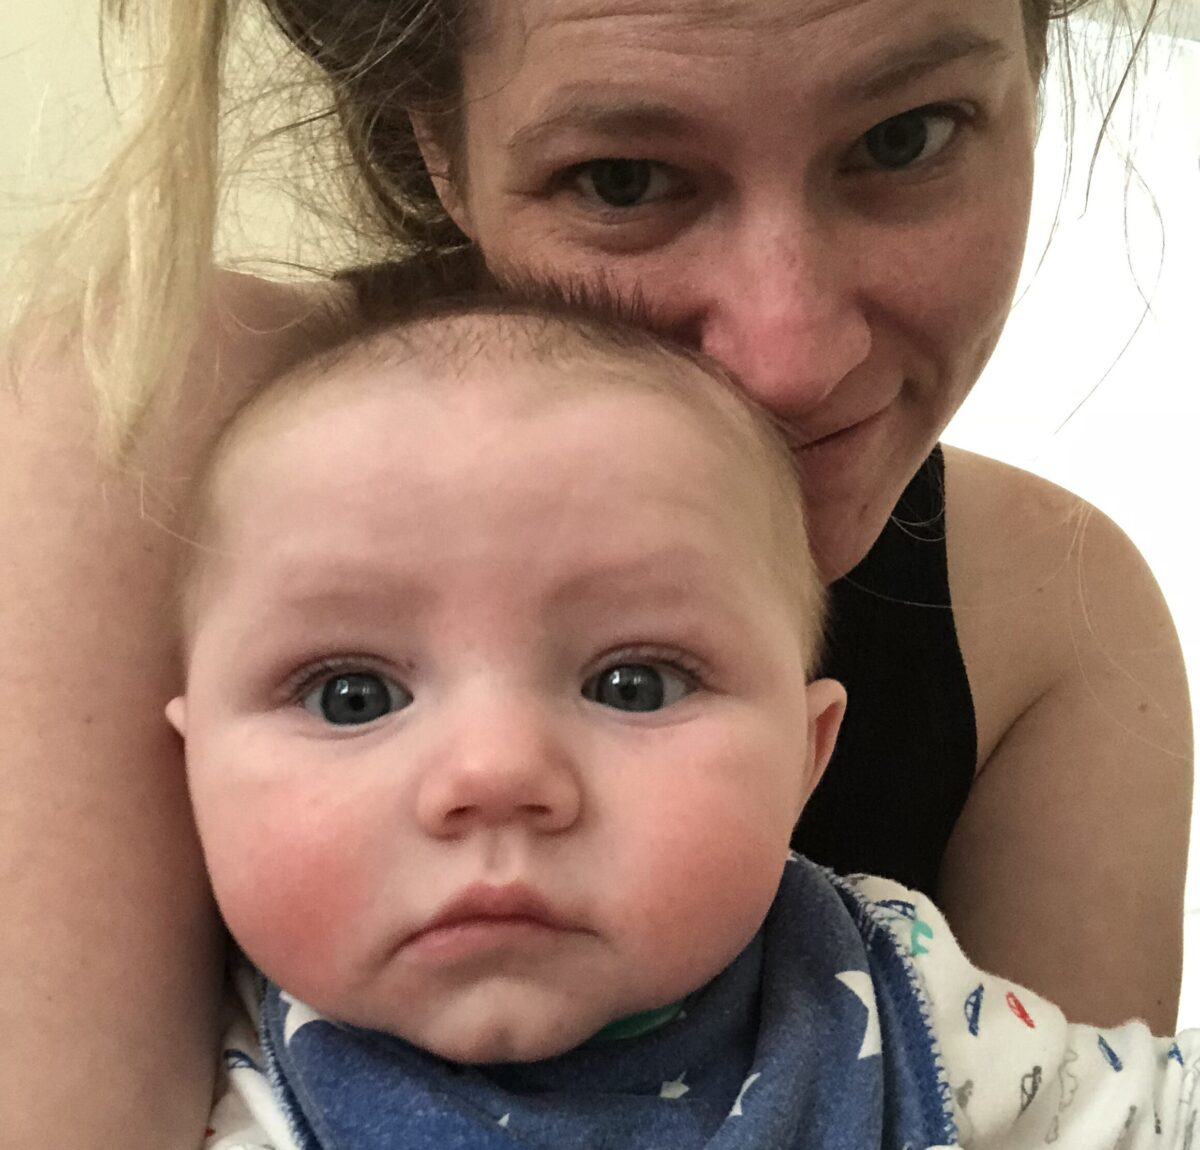 Mother holding baby, selfie, color photo